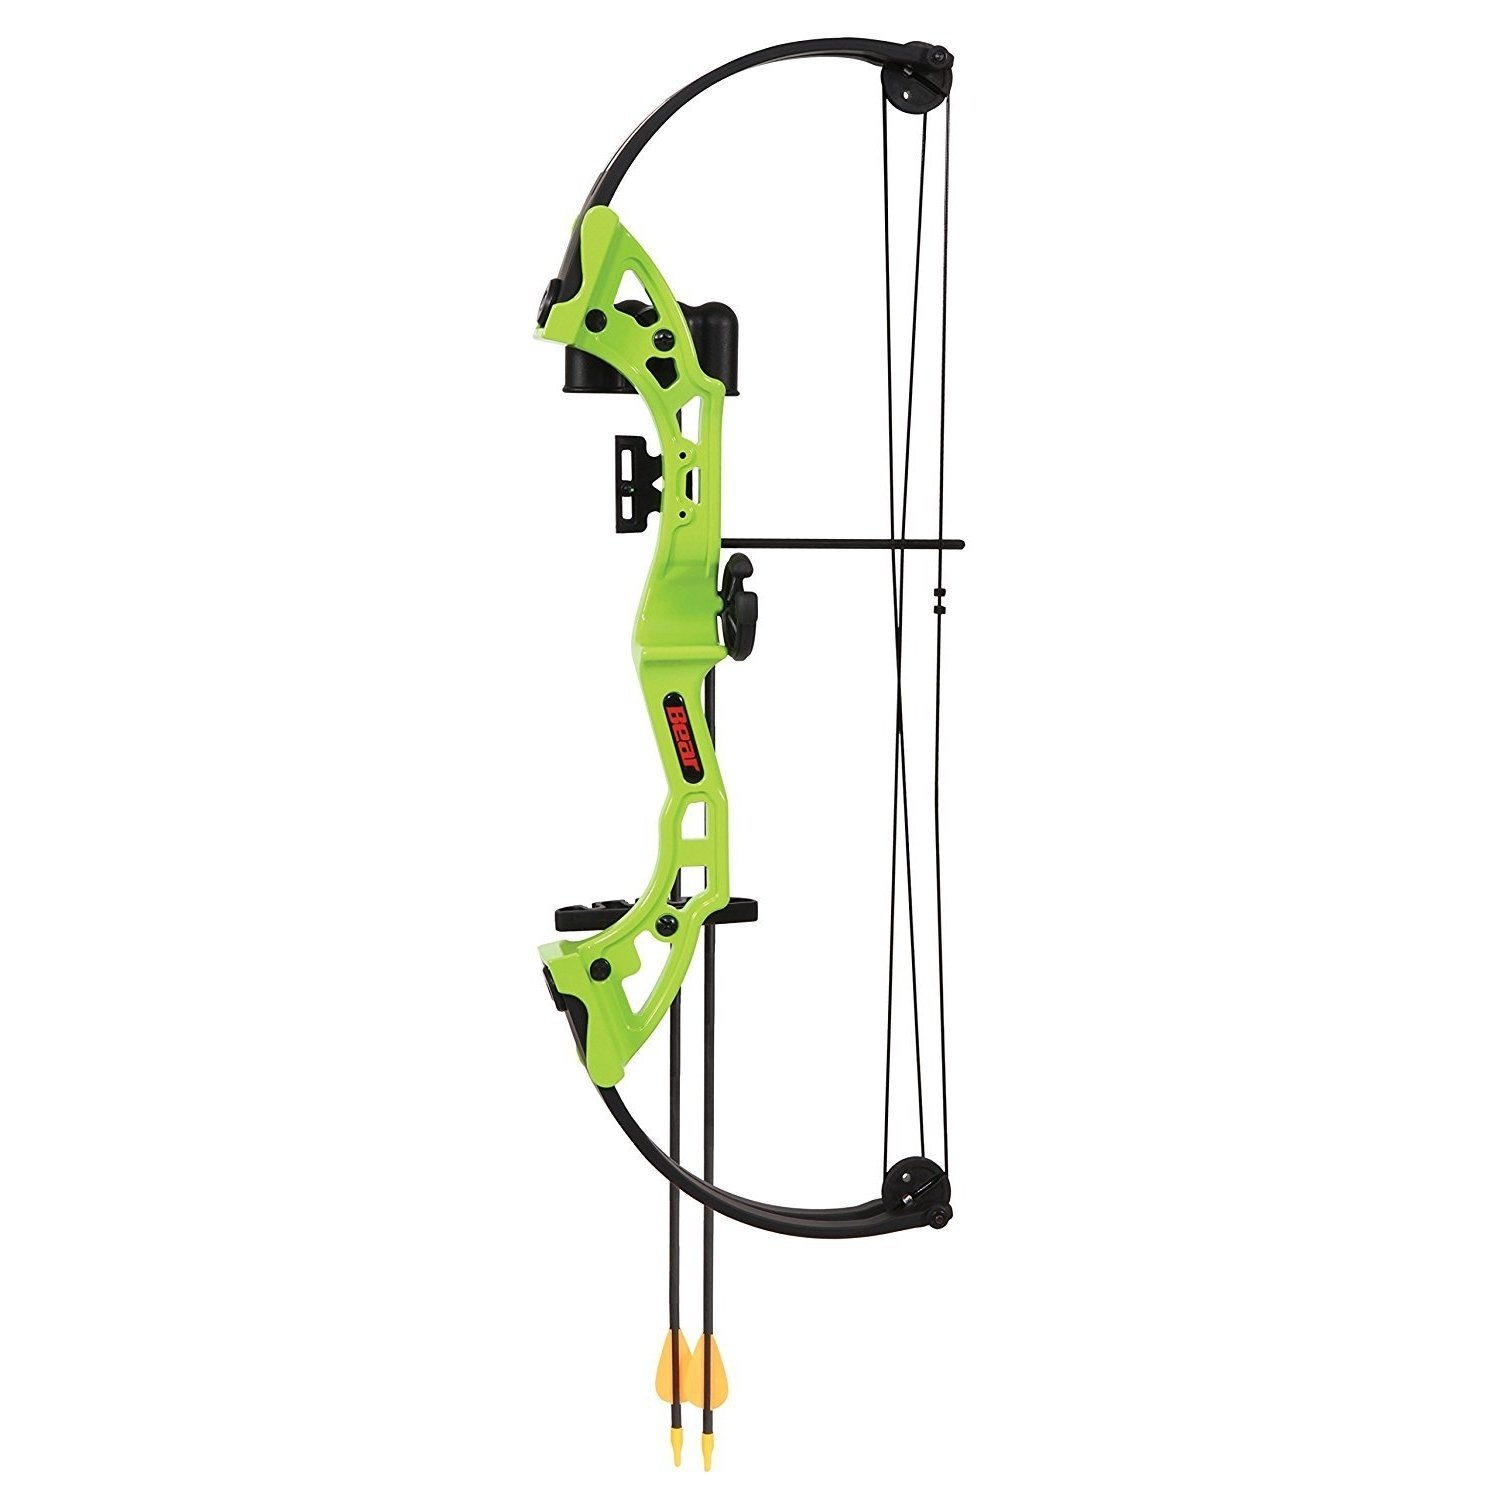 By-Ear Archery Youth Bow, Brave Set Girls Boys Practice Kids Compound Bow, Green